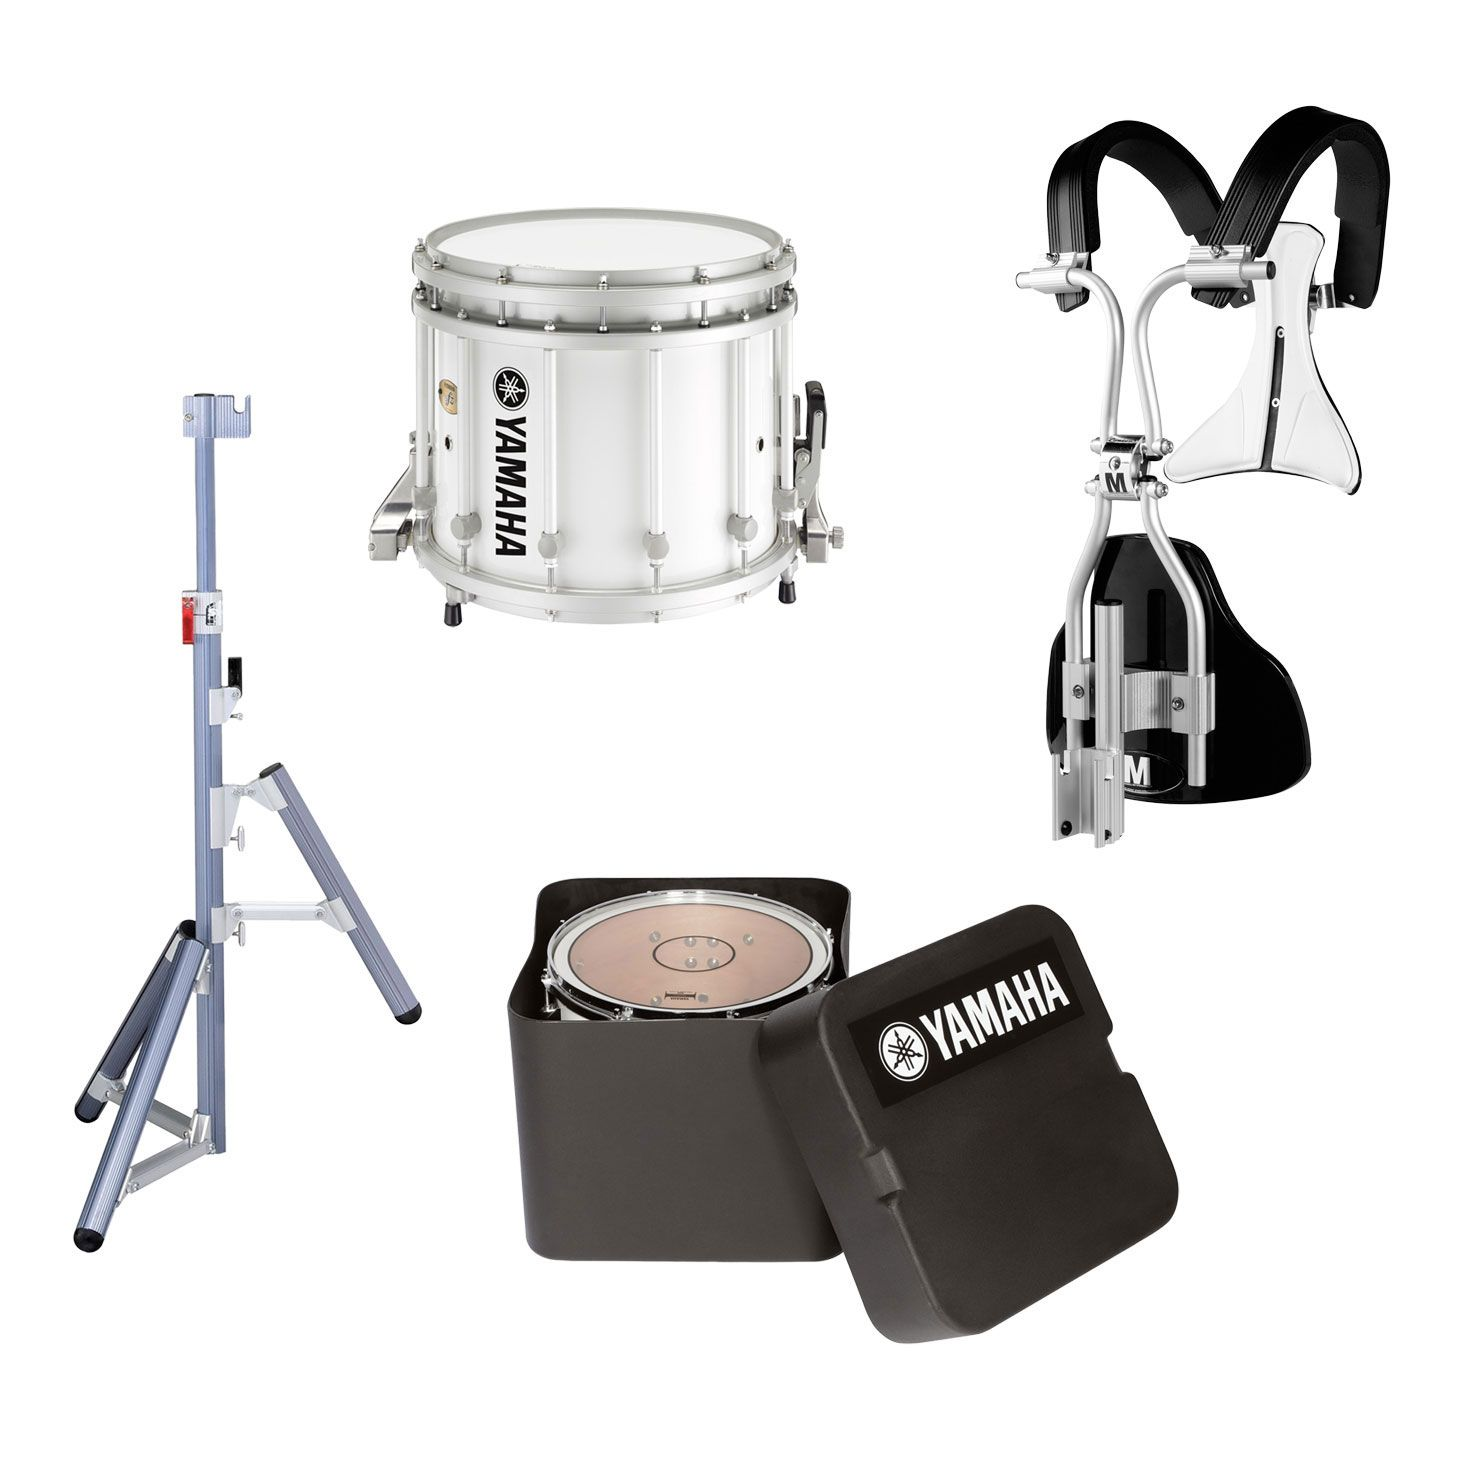 Google chrome themes yamaha - Yamaha 14 Diameter X 12 Deep 9300 Sfz Marching Snare Drum With Chrome Hardware Monoposto Carrier Case And Stand